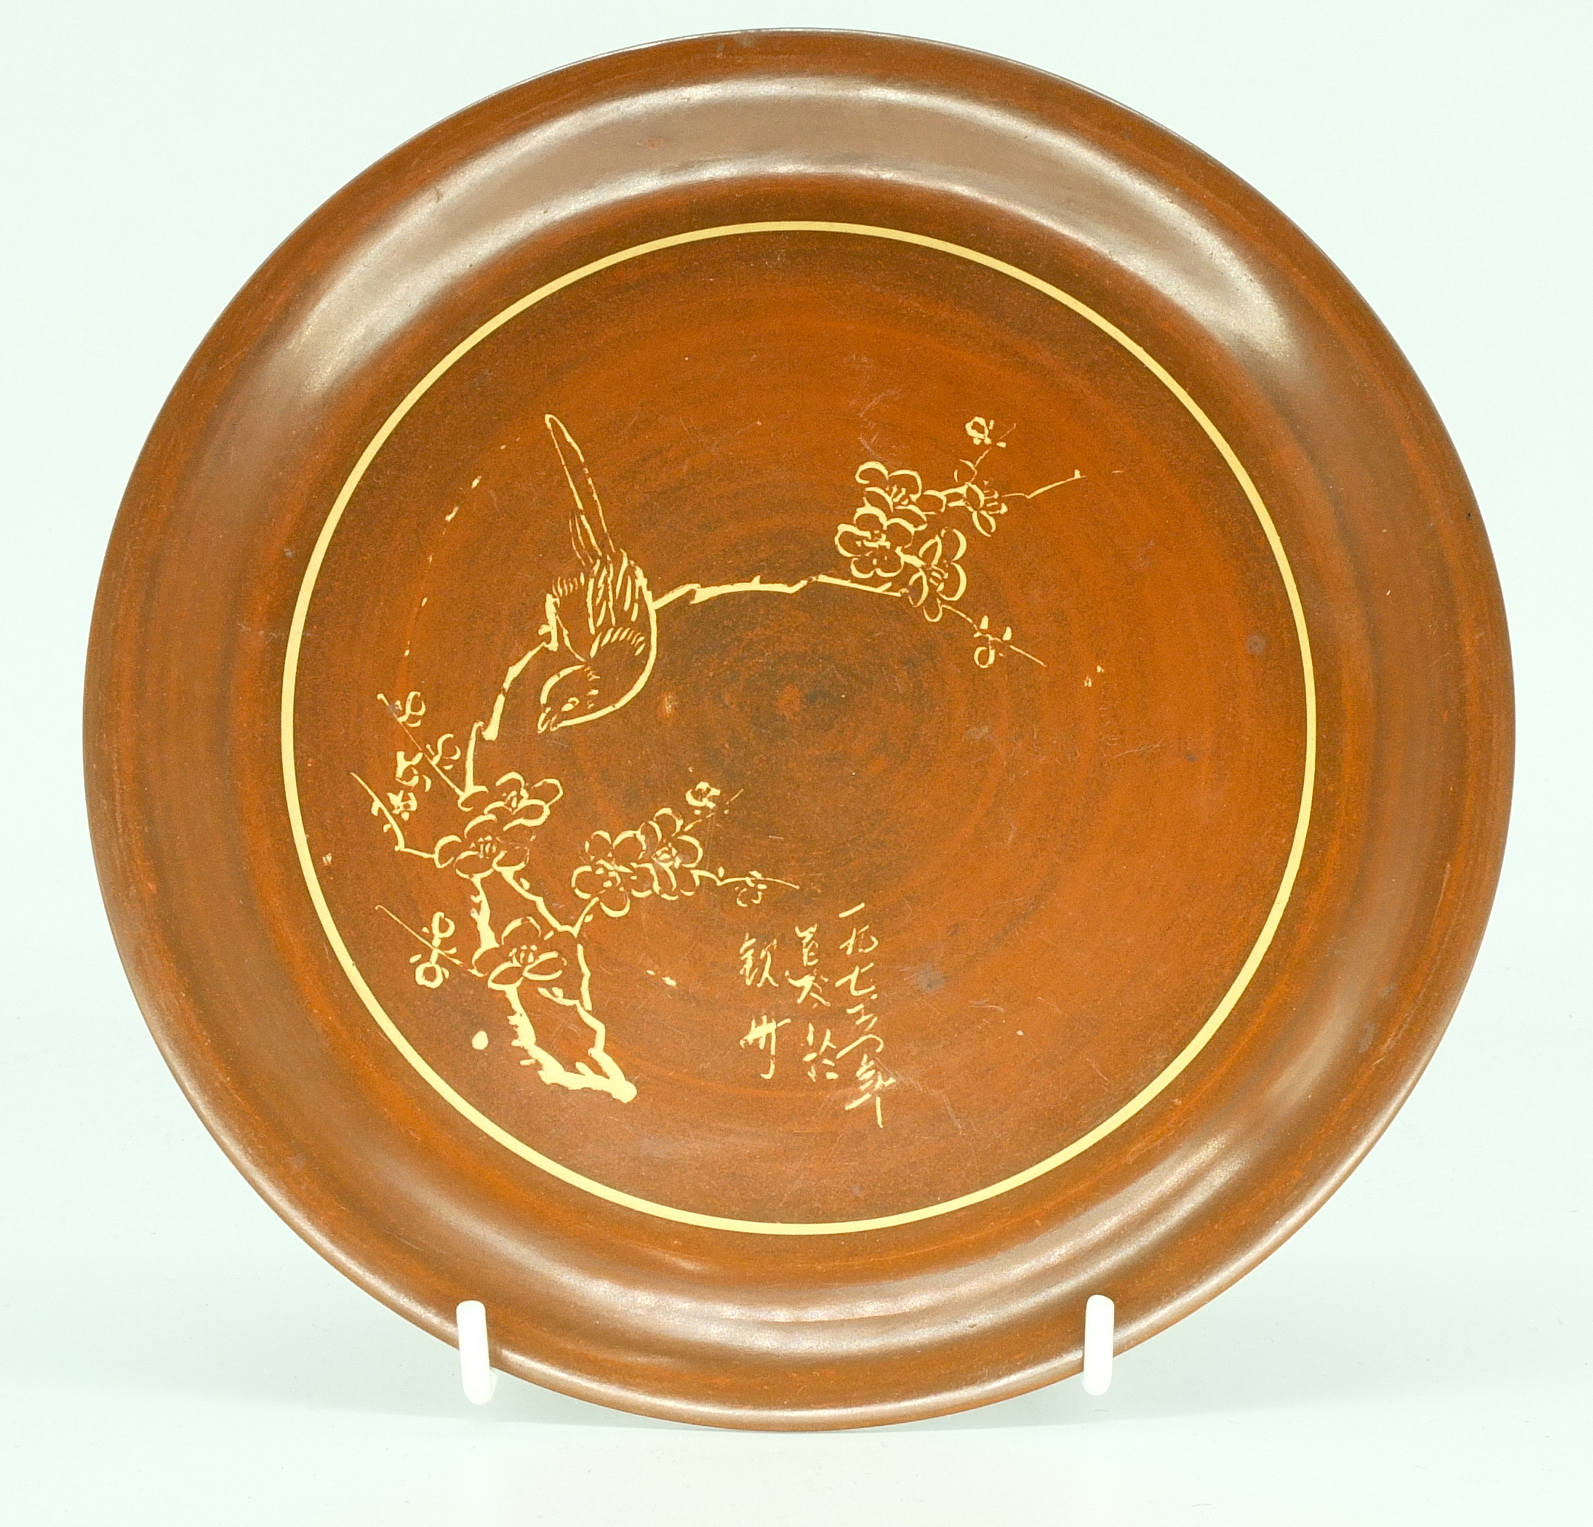 'Chinese Yixing Pottery Dish with Inscribed Decoration'